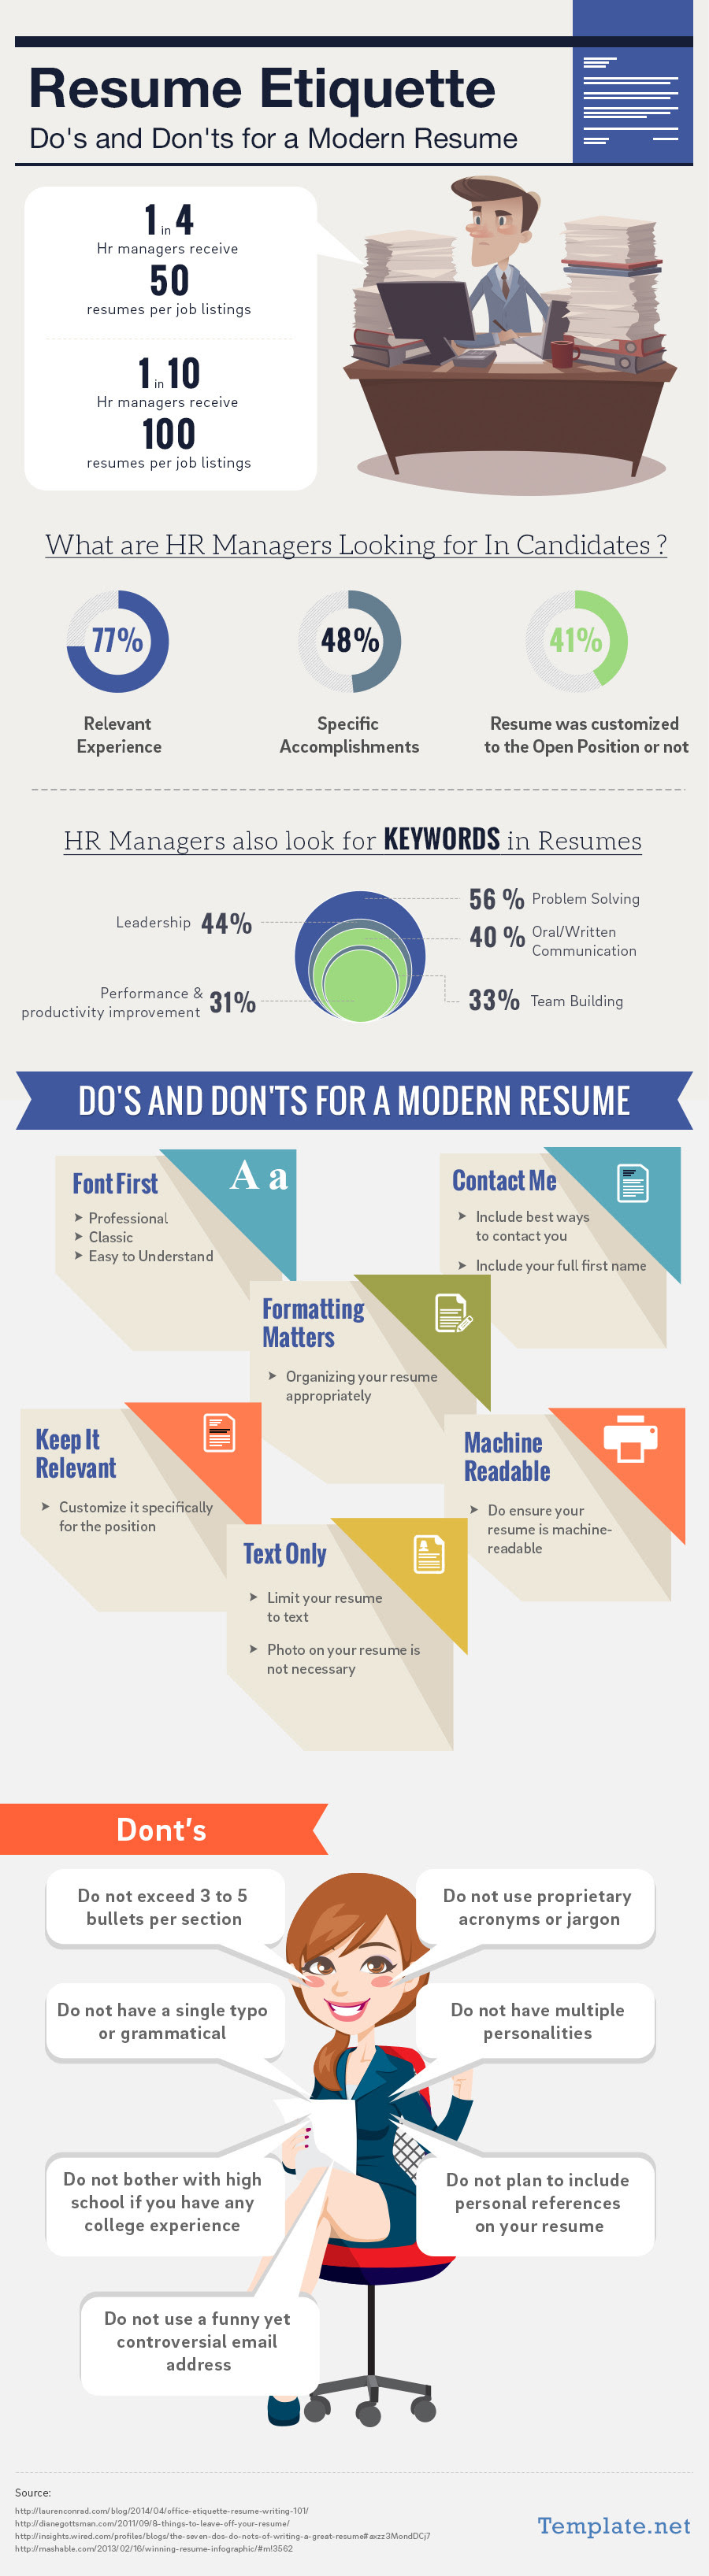 Resume Etiquette Do's and Don'ts for a Modern Resume